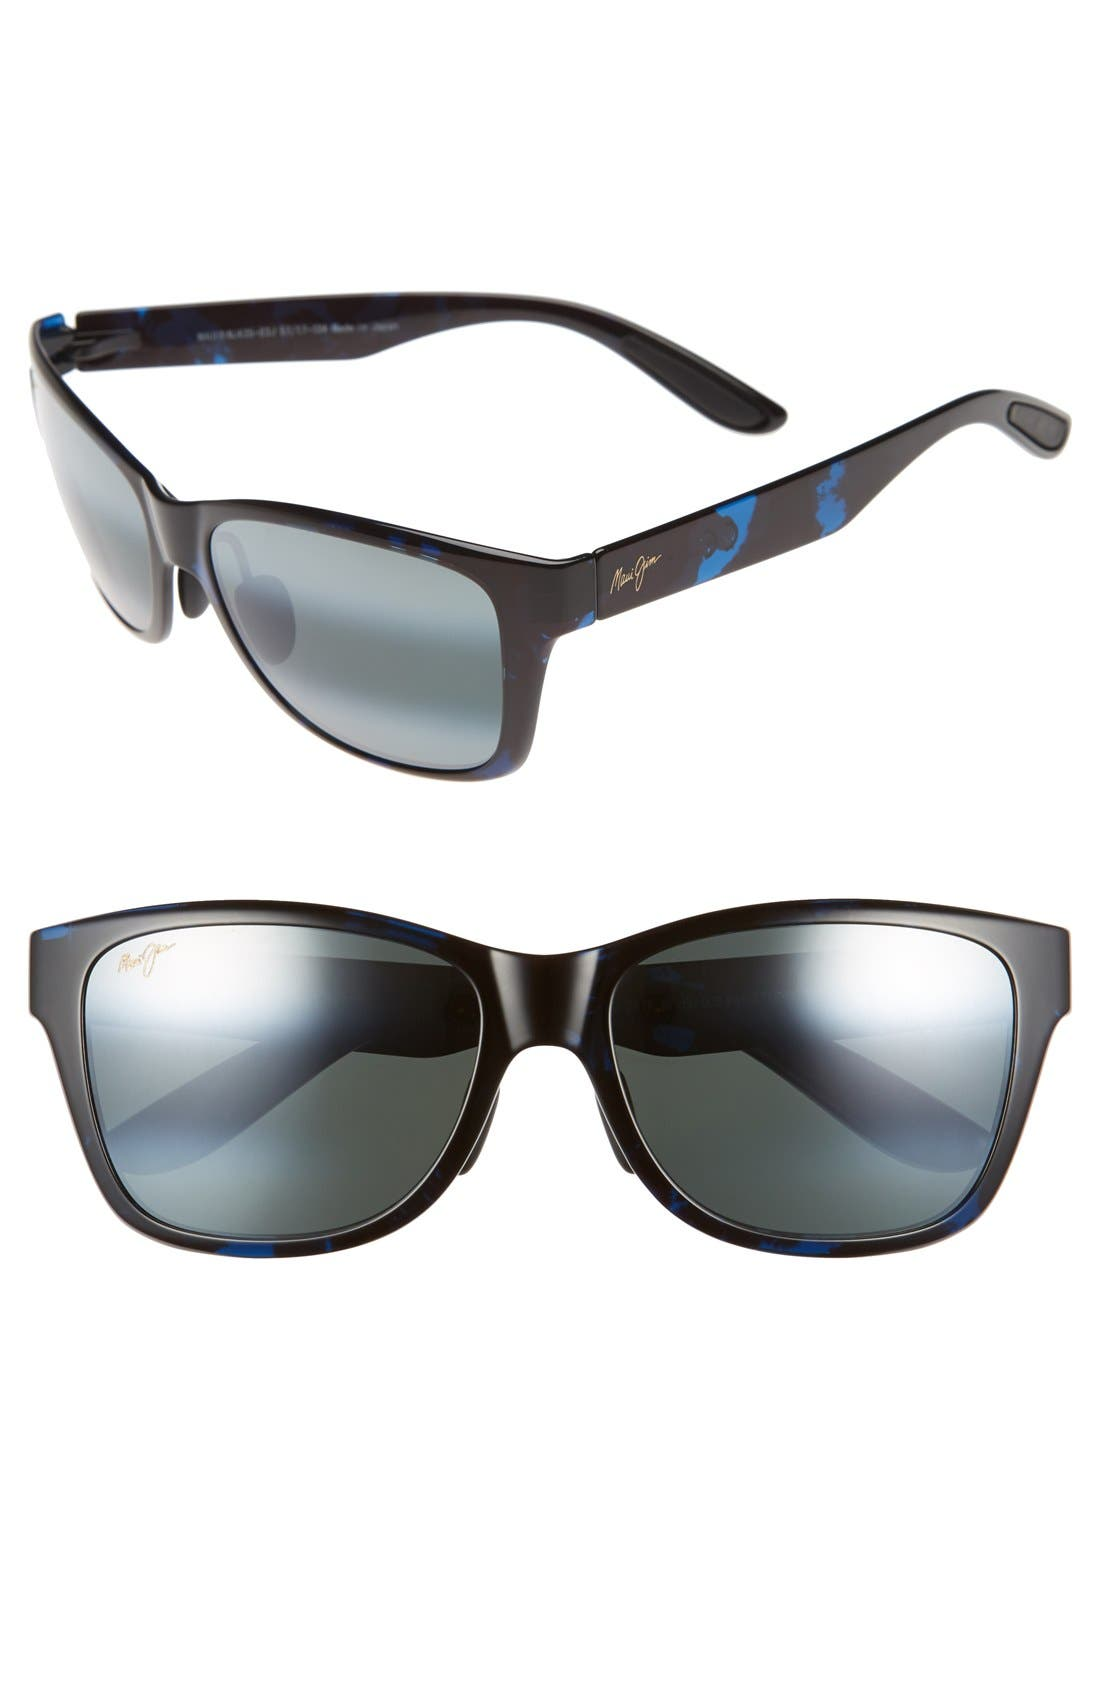 Main Image - Maui Jim 'Road Trip' 57mm Polarized Sunglasses